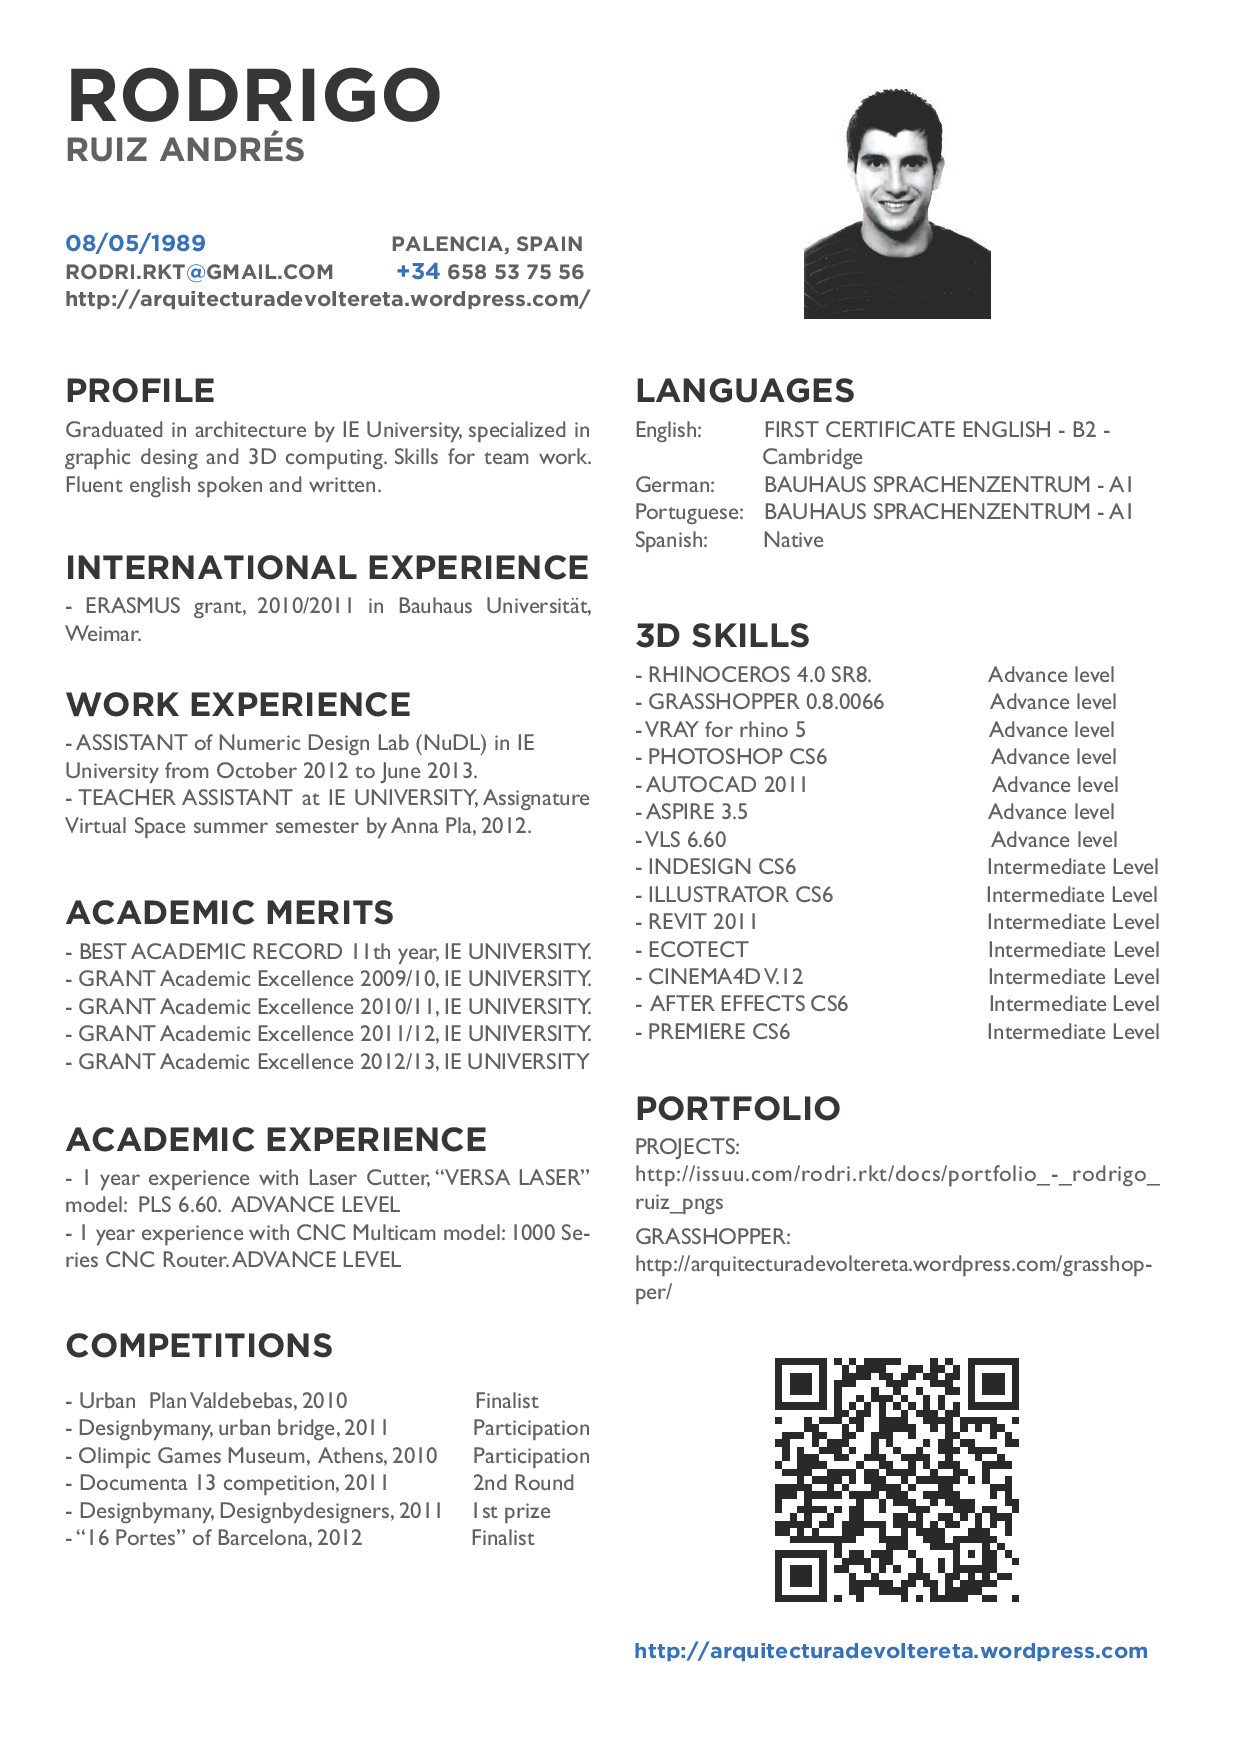 Luxury Modelo De Curriculum Vitae Filetype Doc Images - Resume Ideas ...